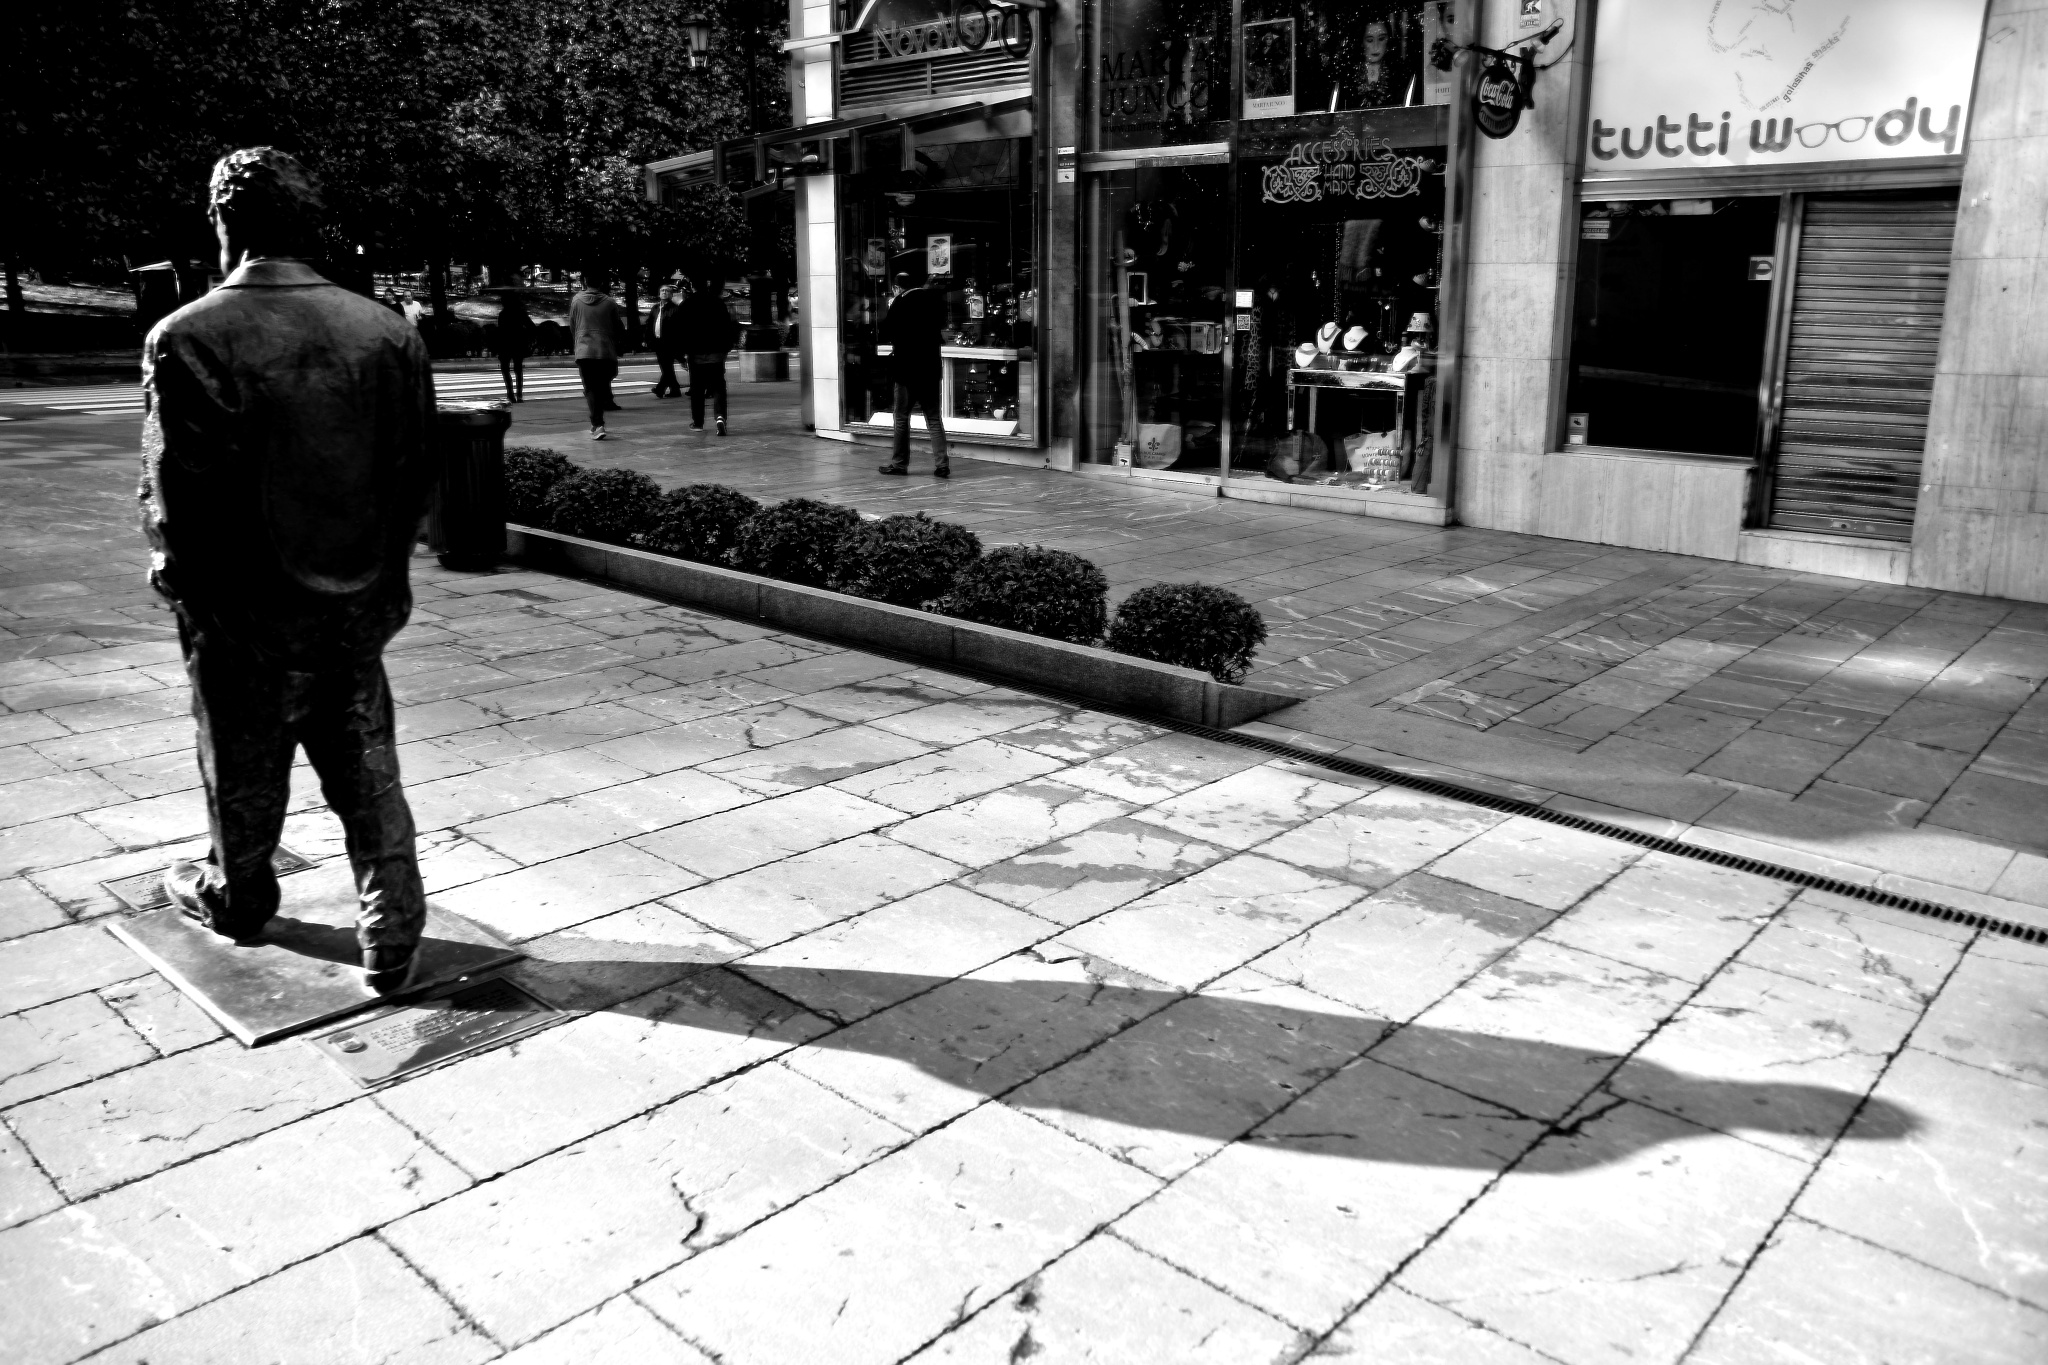 Woody is walking. Oviedo, Asturias. by Xurde González Uría